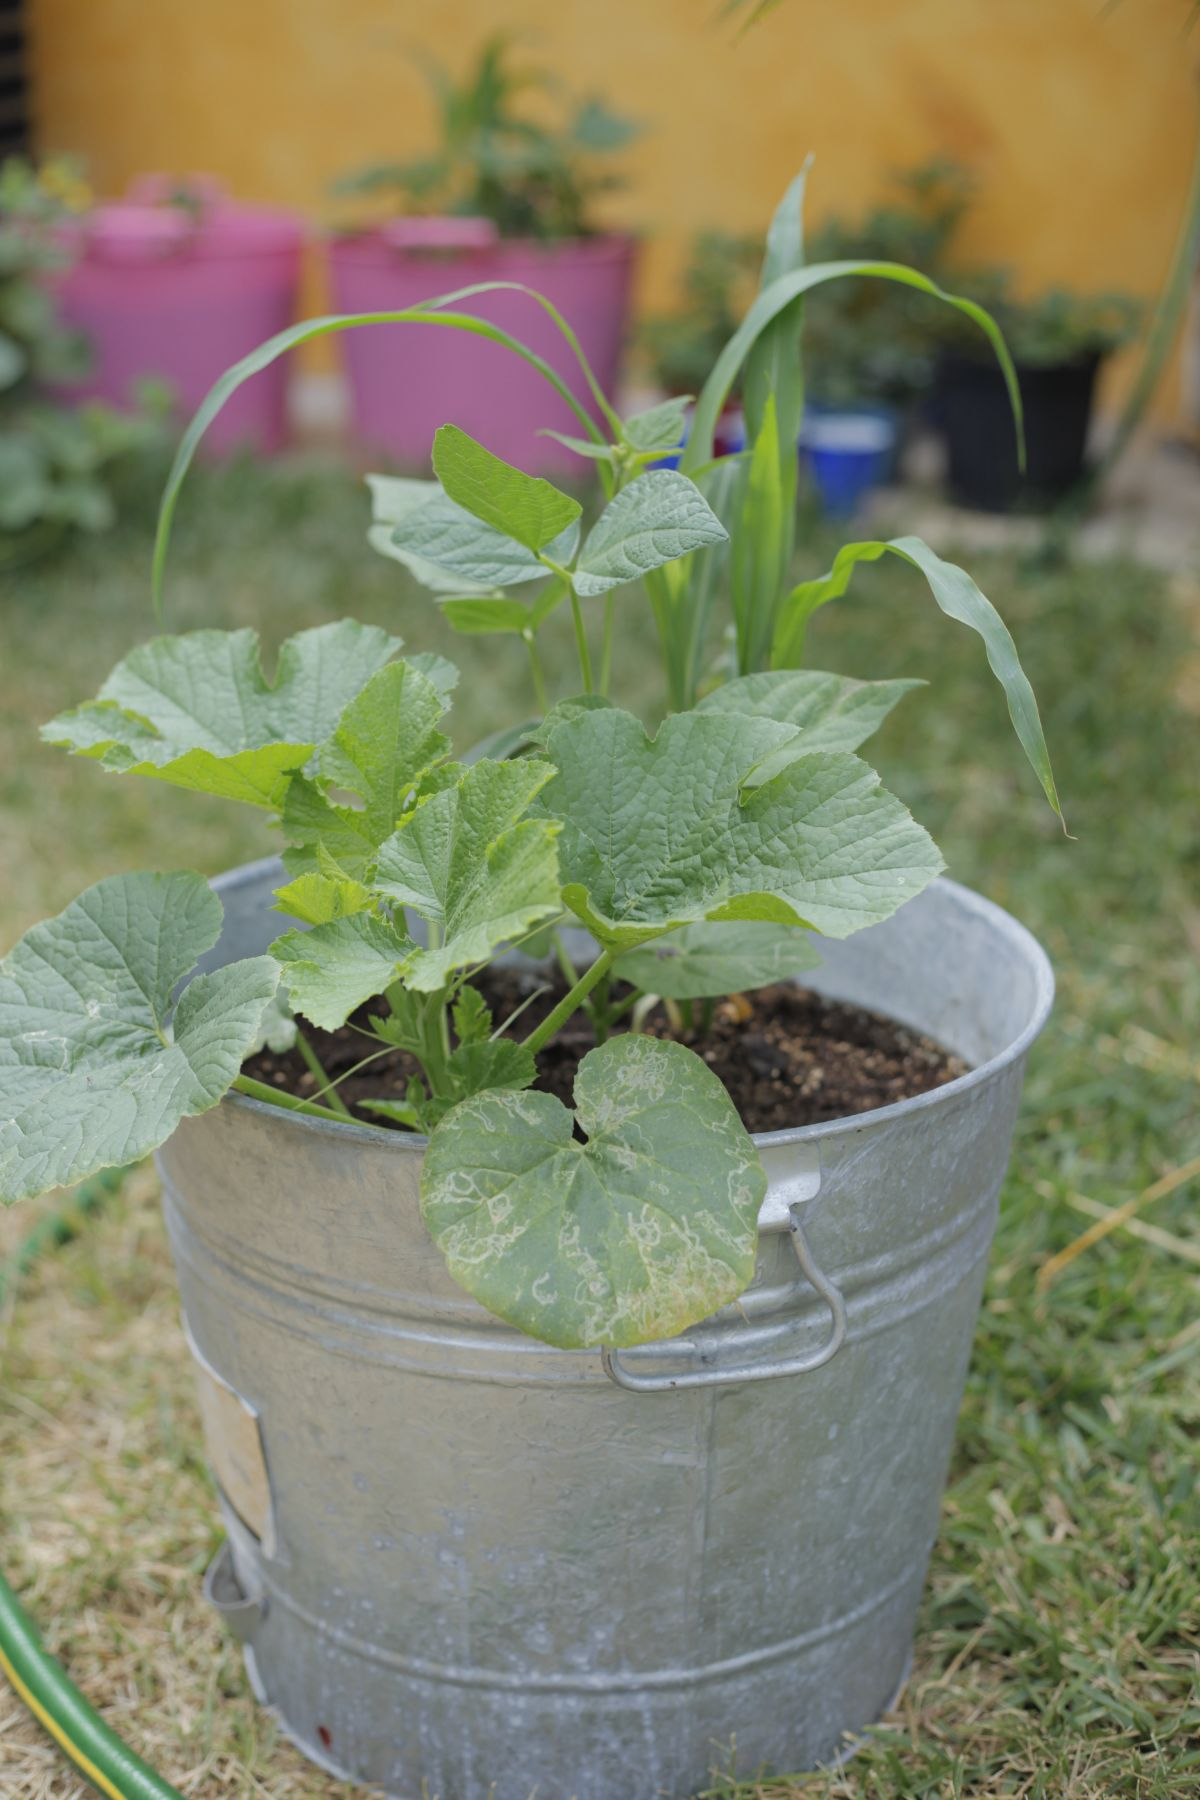 winter squash plant in a bucket